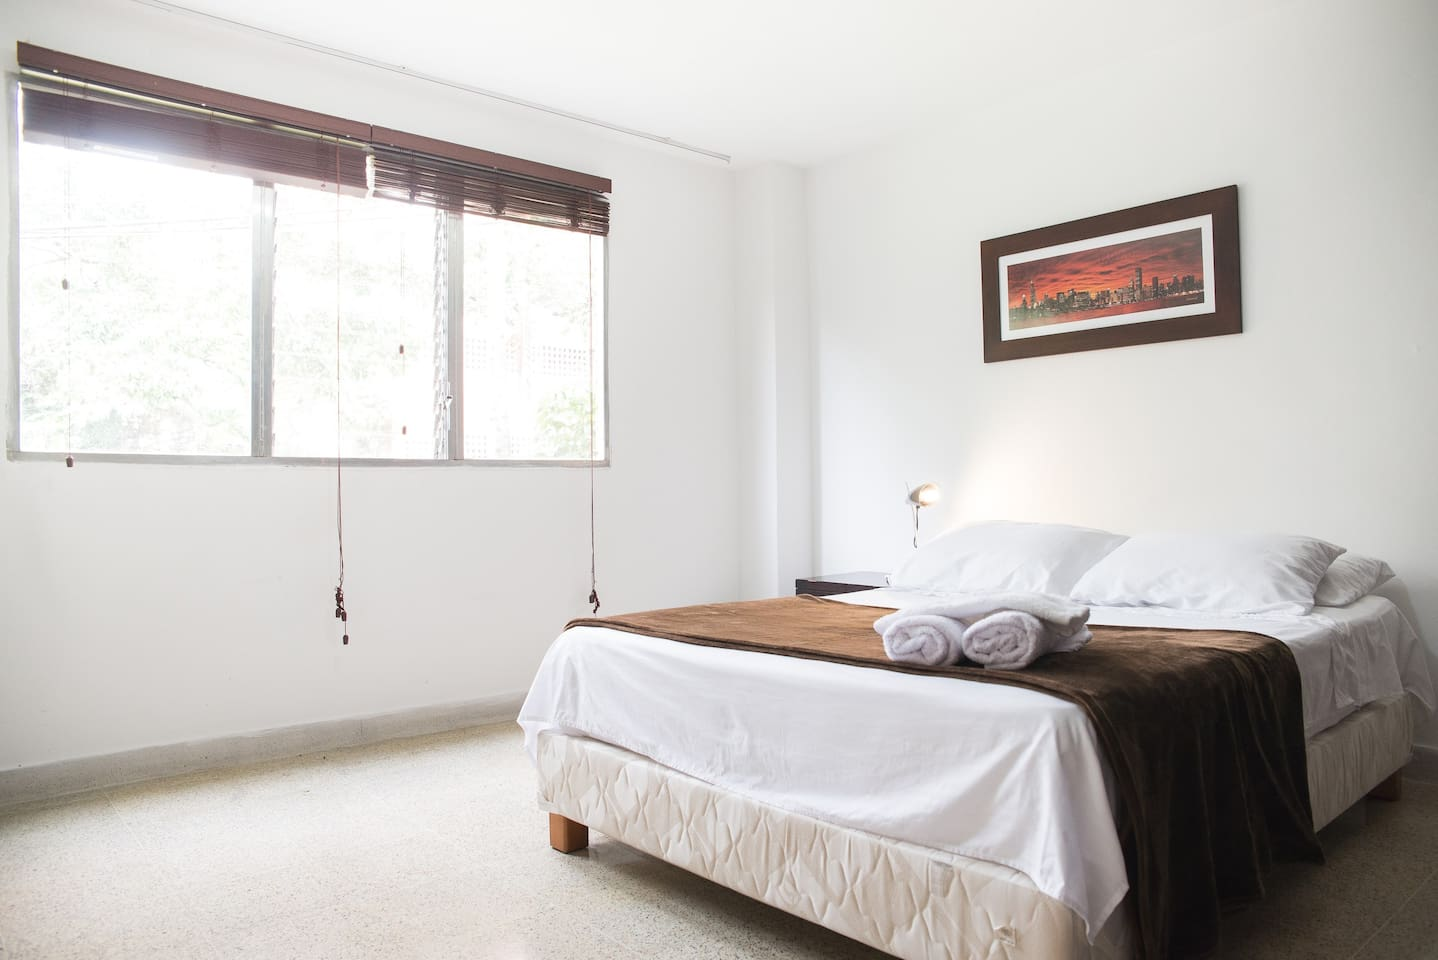 Your amazing bedroom in the best neighborhood of Medellin. Everything you may need